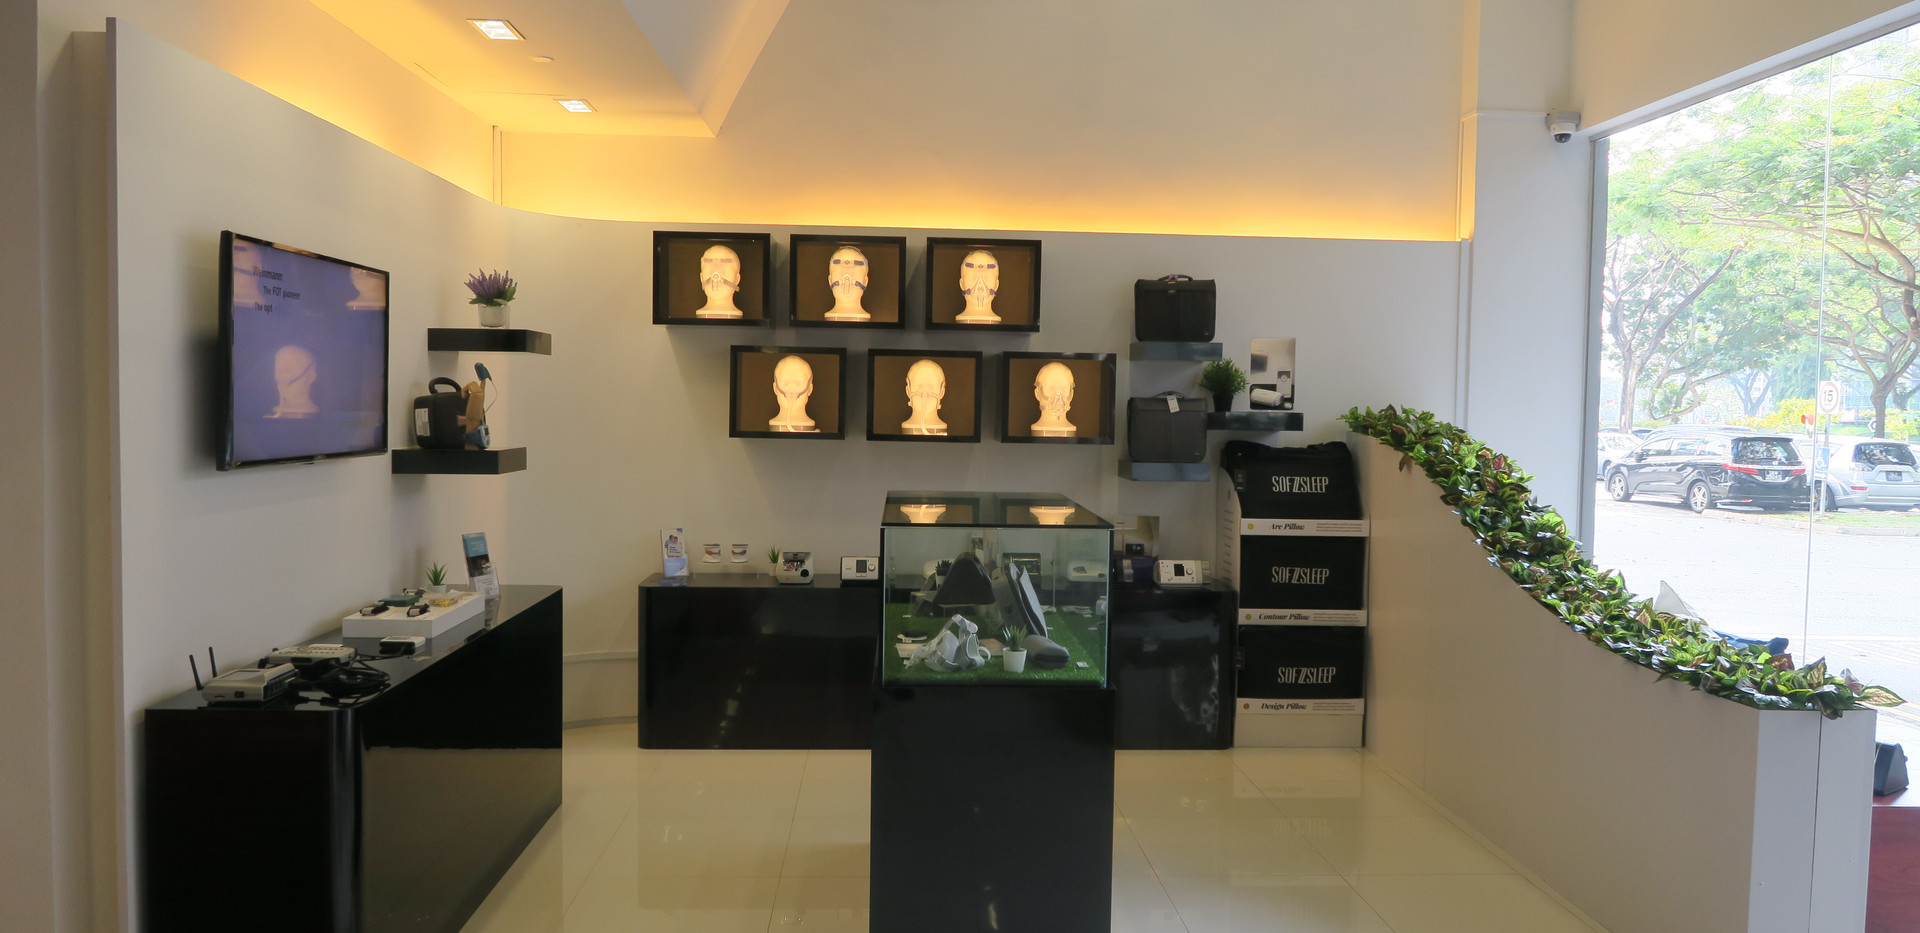 The Air Station Showroom